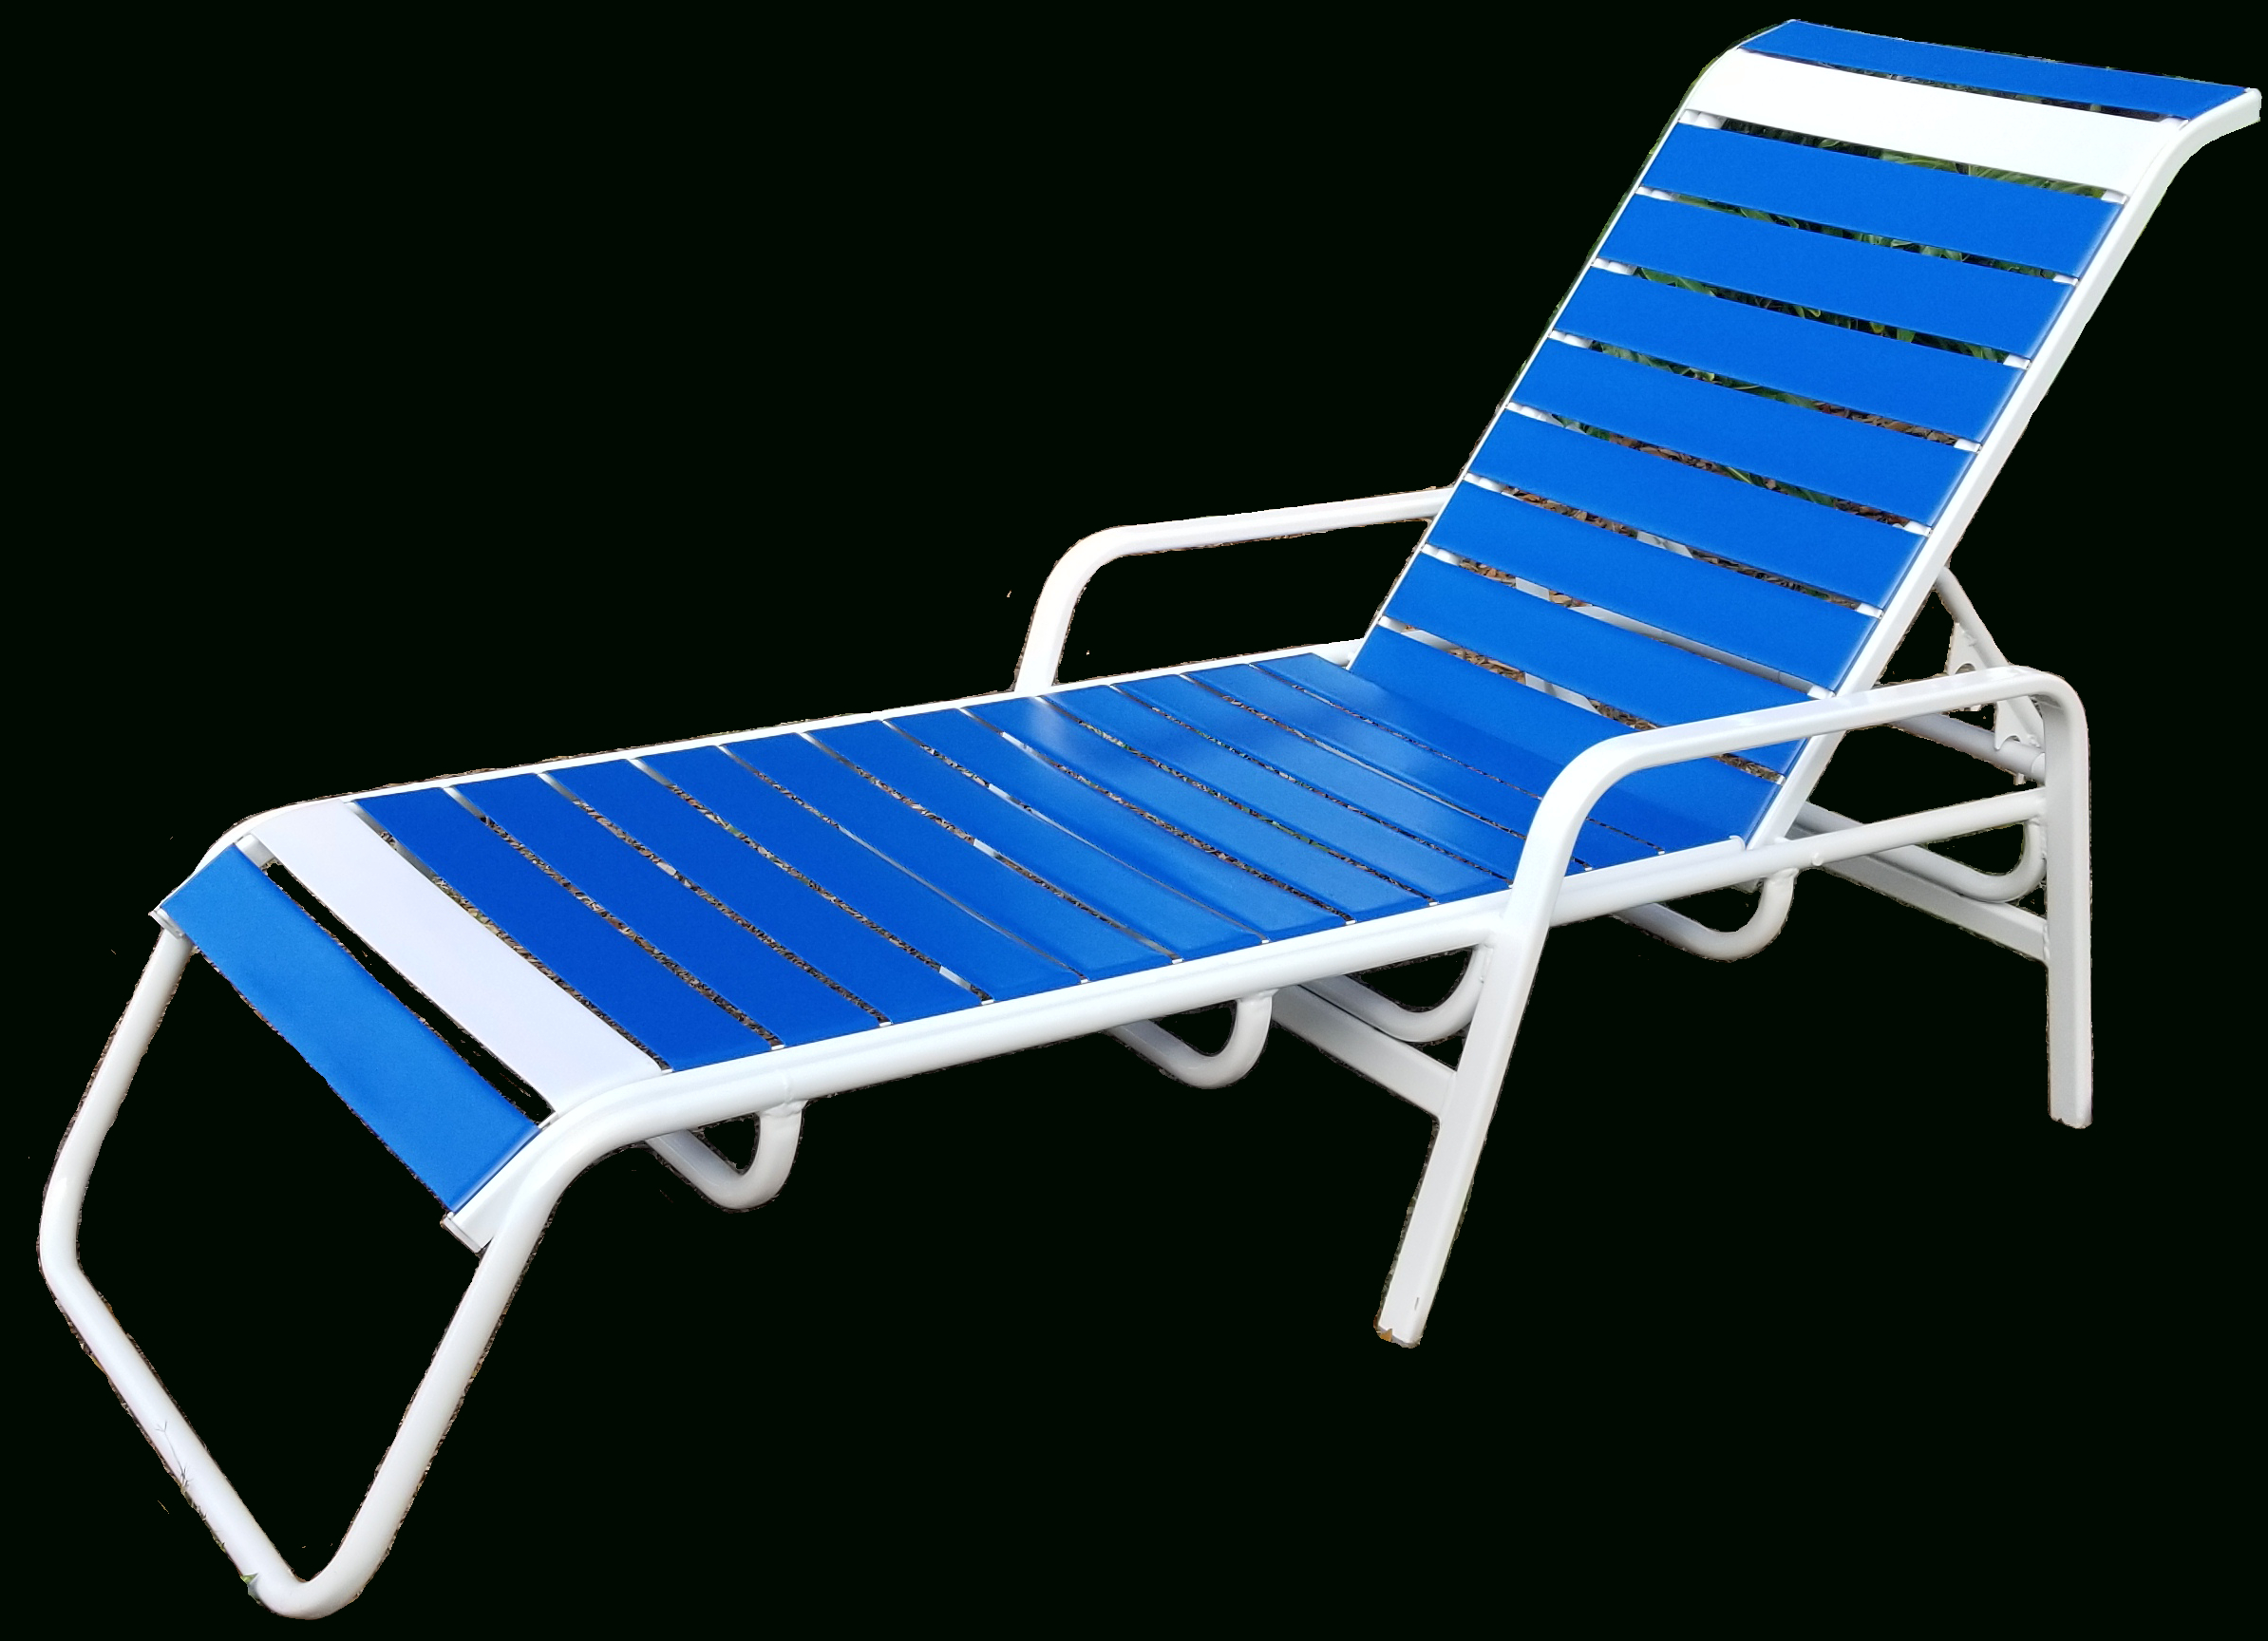 Most Recently Released Jamaica Outdoor Wicker Chaise Lounges With Cushion With Wide Strap Lounge R 150ez (Gallery 22 of 25)